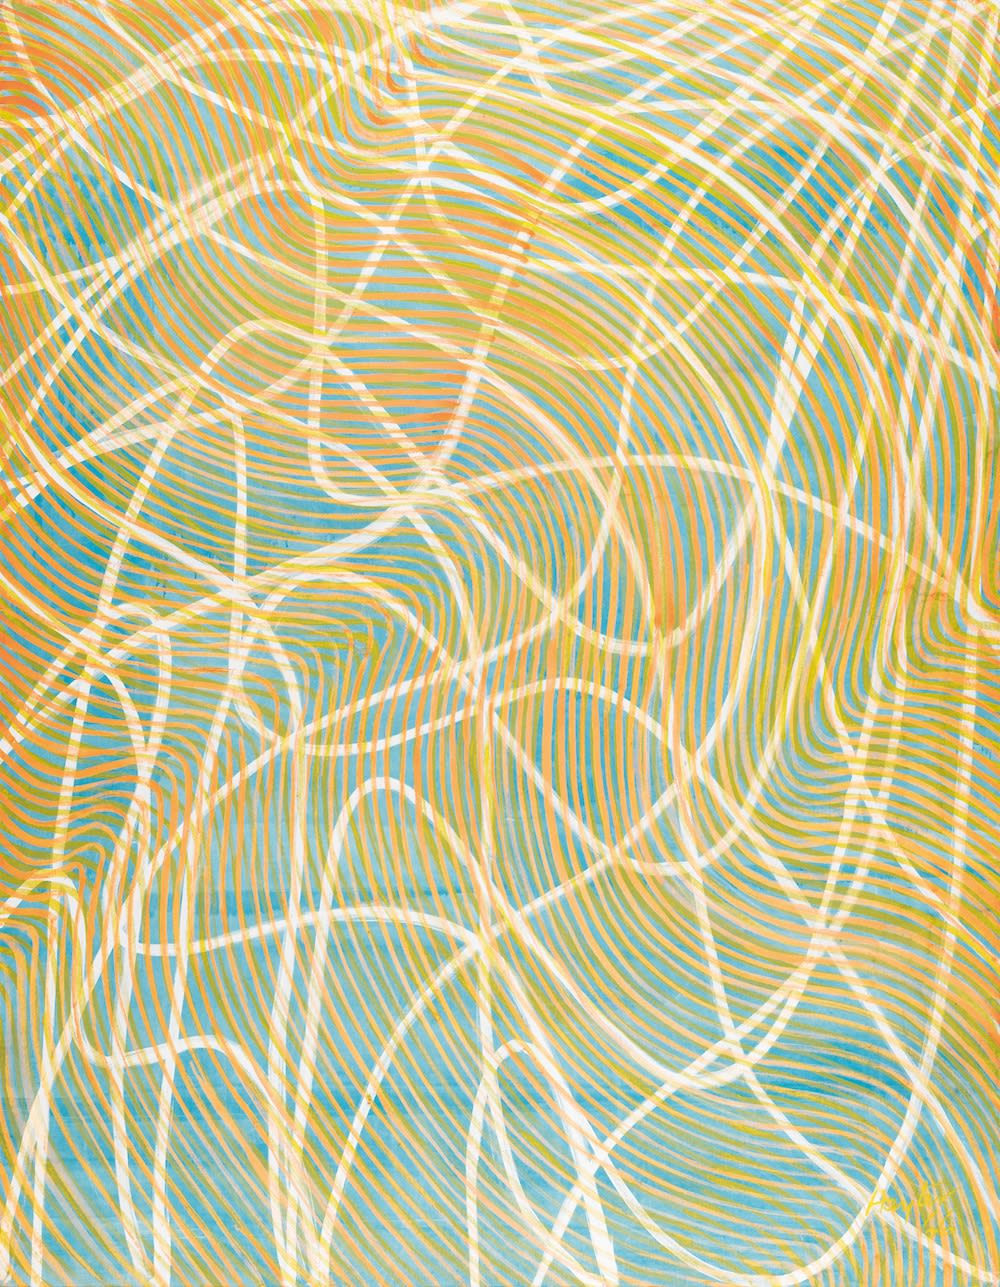 Stanley William Hayter, Echanges, 1966